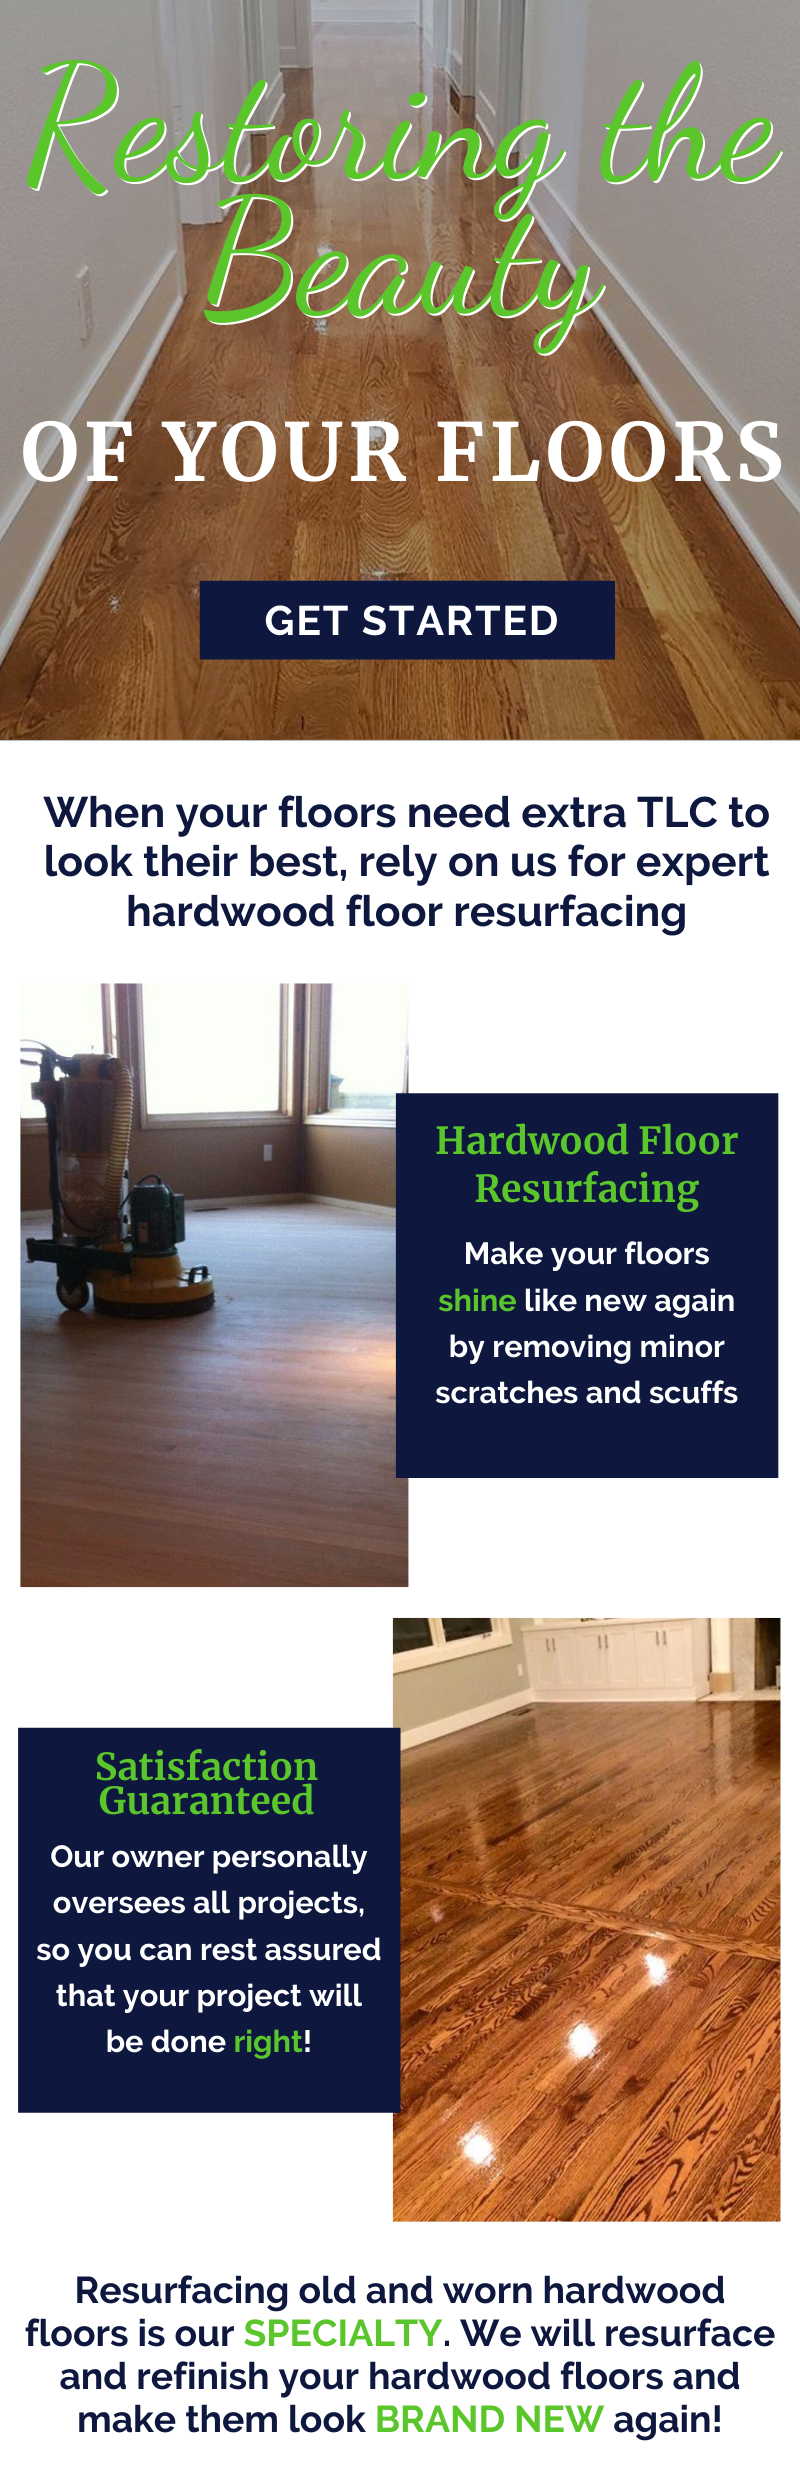 Restoring The Beauty Of Your Floors! 1